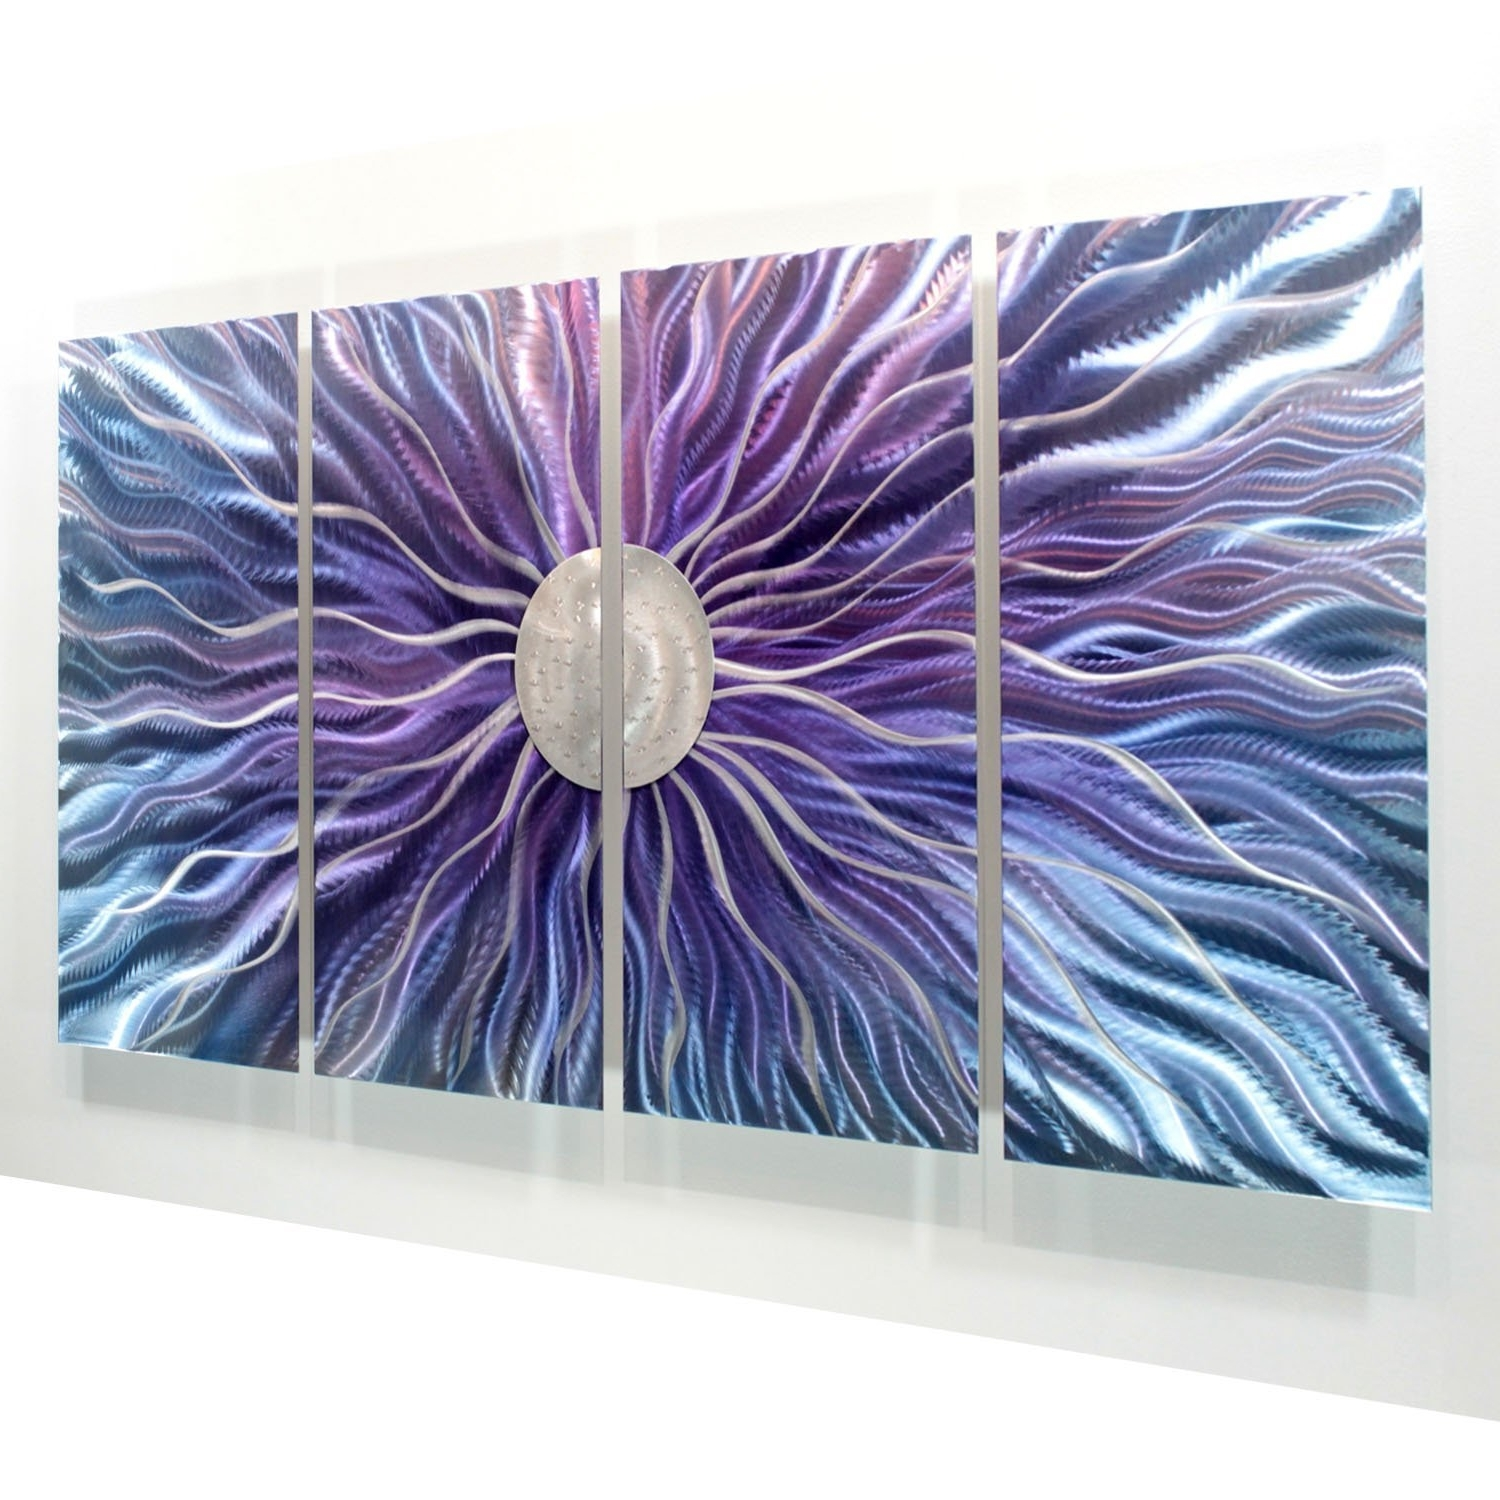 Amazon: Large Blue, Purple, And Silver Metal Wall Art Painting In Famous Large Metal Wall Art Sculptures (View 2 of 15)